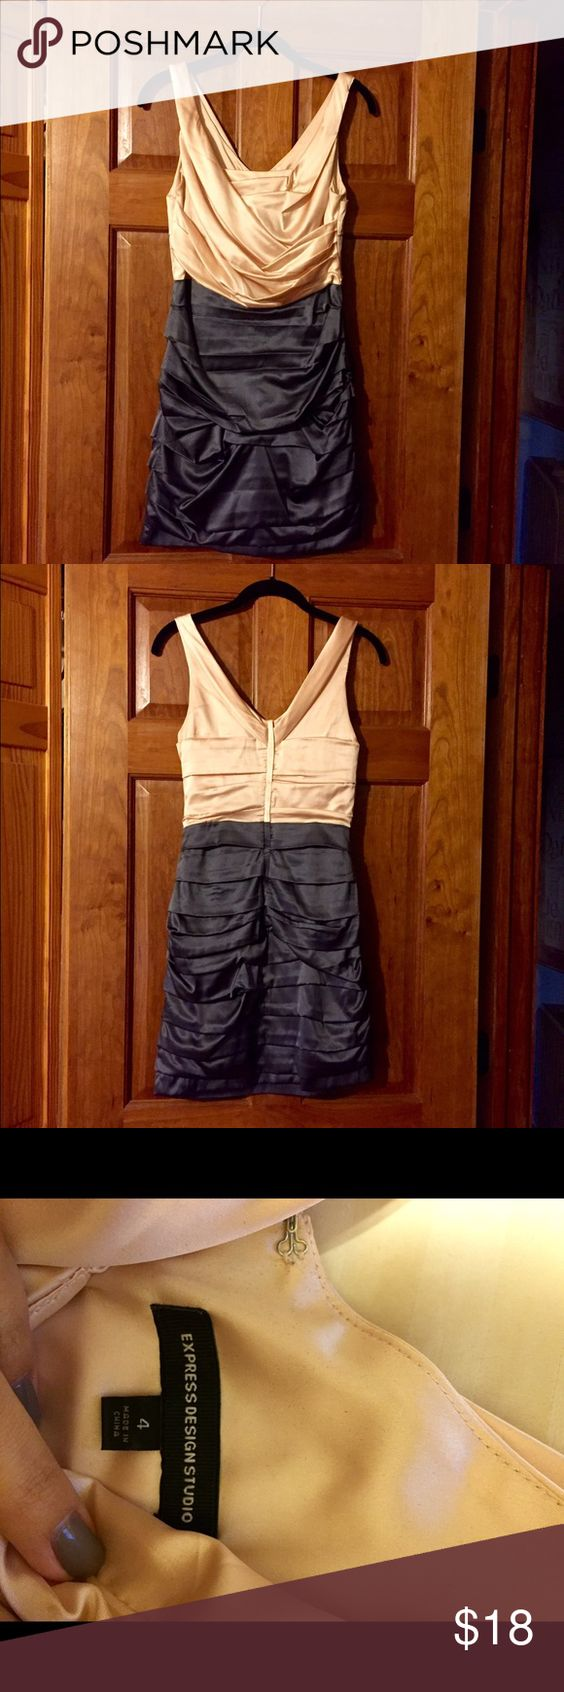 Express Pink and Gray Dress Express pink and gray short dress. Size 4. Excellent condition. Back zip. Very flattering! Express Dresses